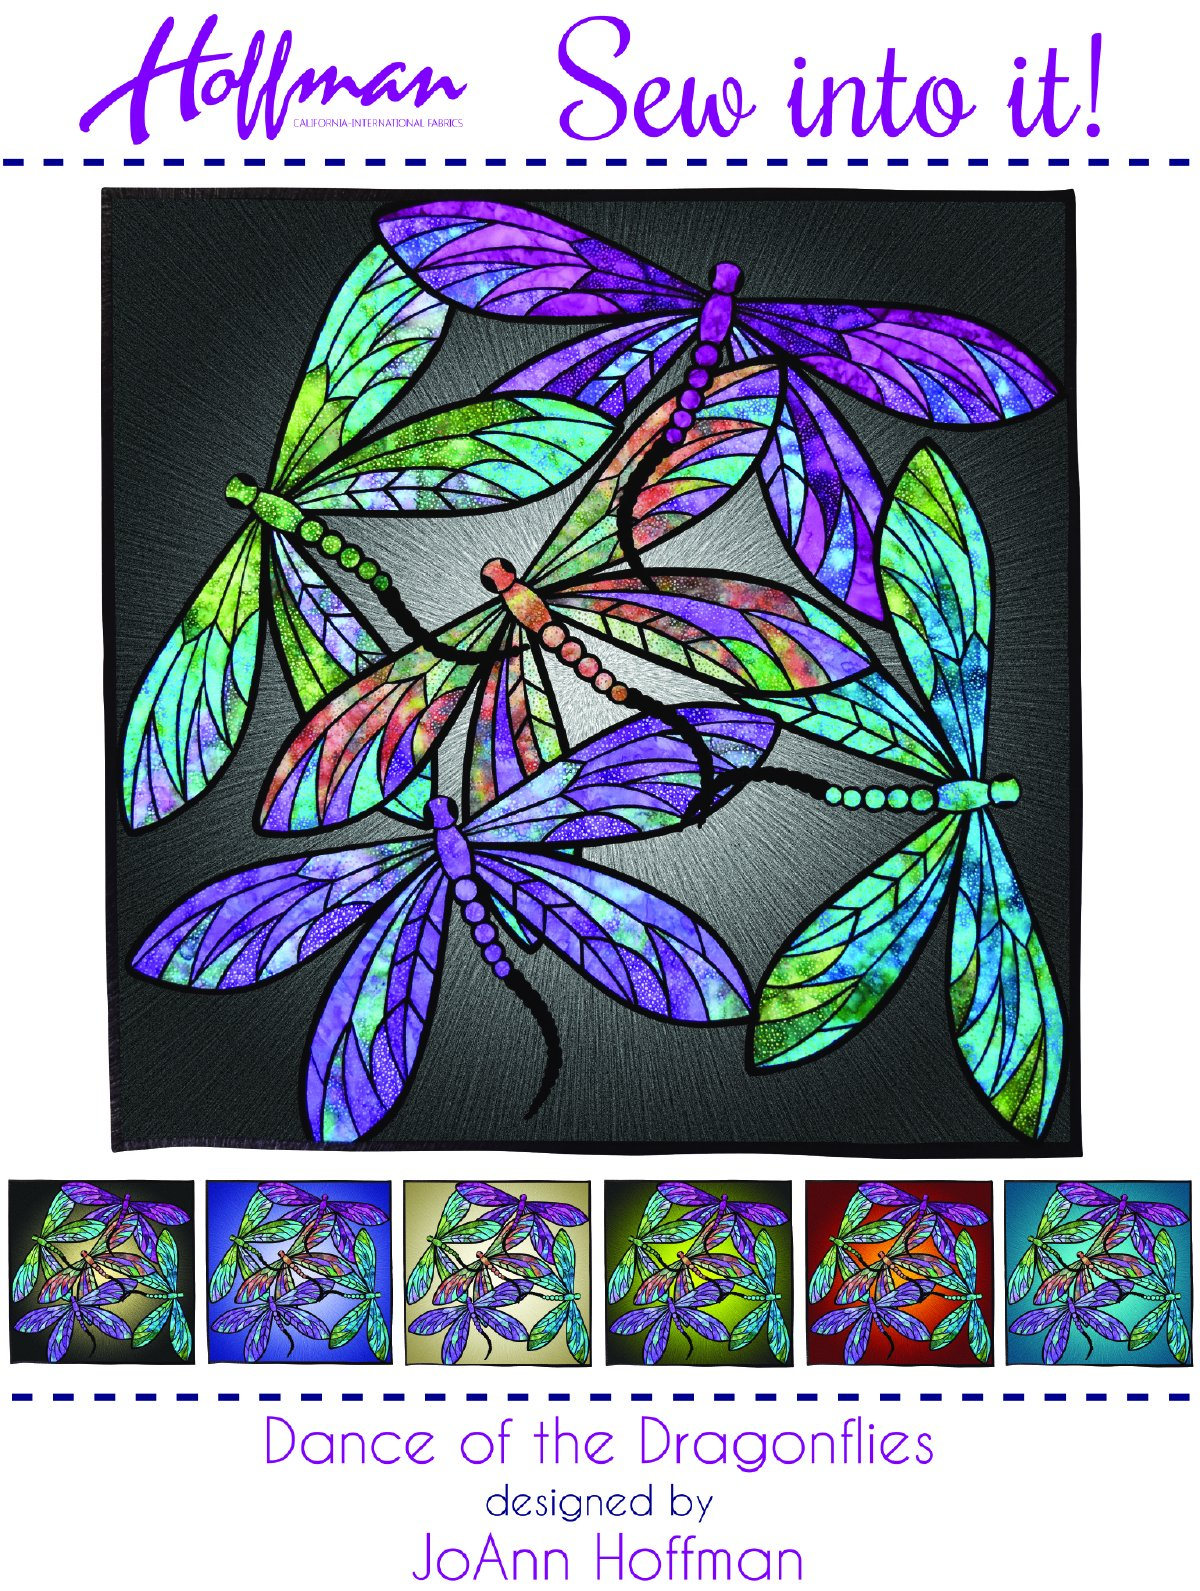 Dance of the Dragonflies Stained Glass Sew into it Kit by JoAnn Hoffman